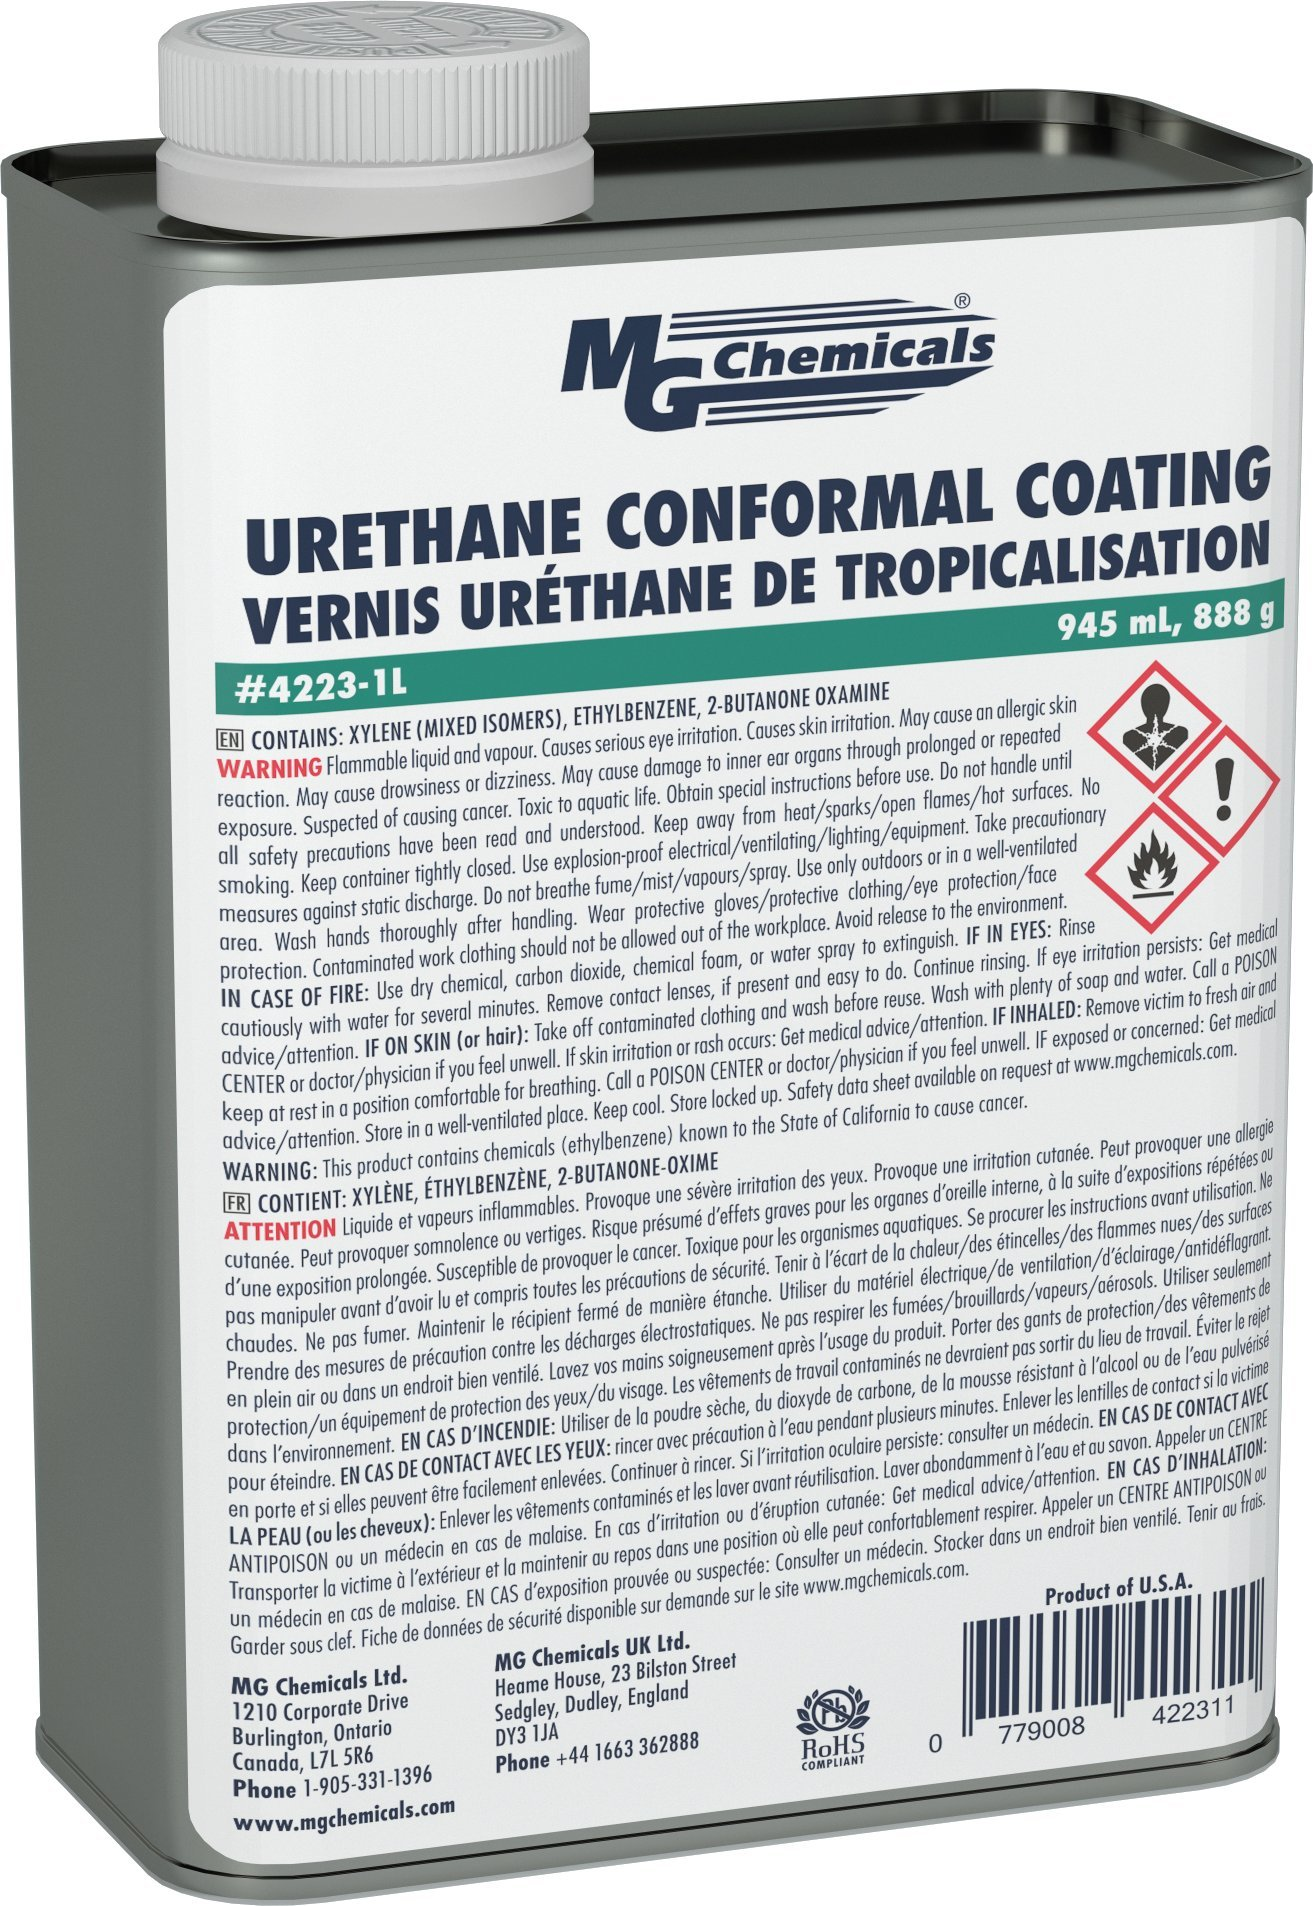 MG Chemicals Urethane Conformal Coating, 1 Quart Can by MG Chemicals